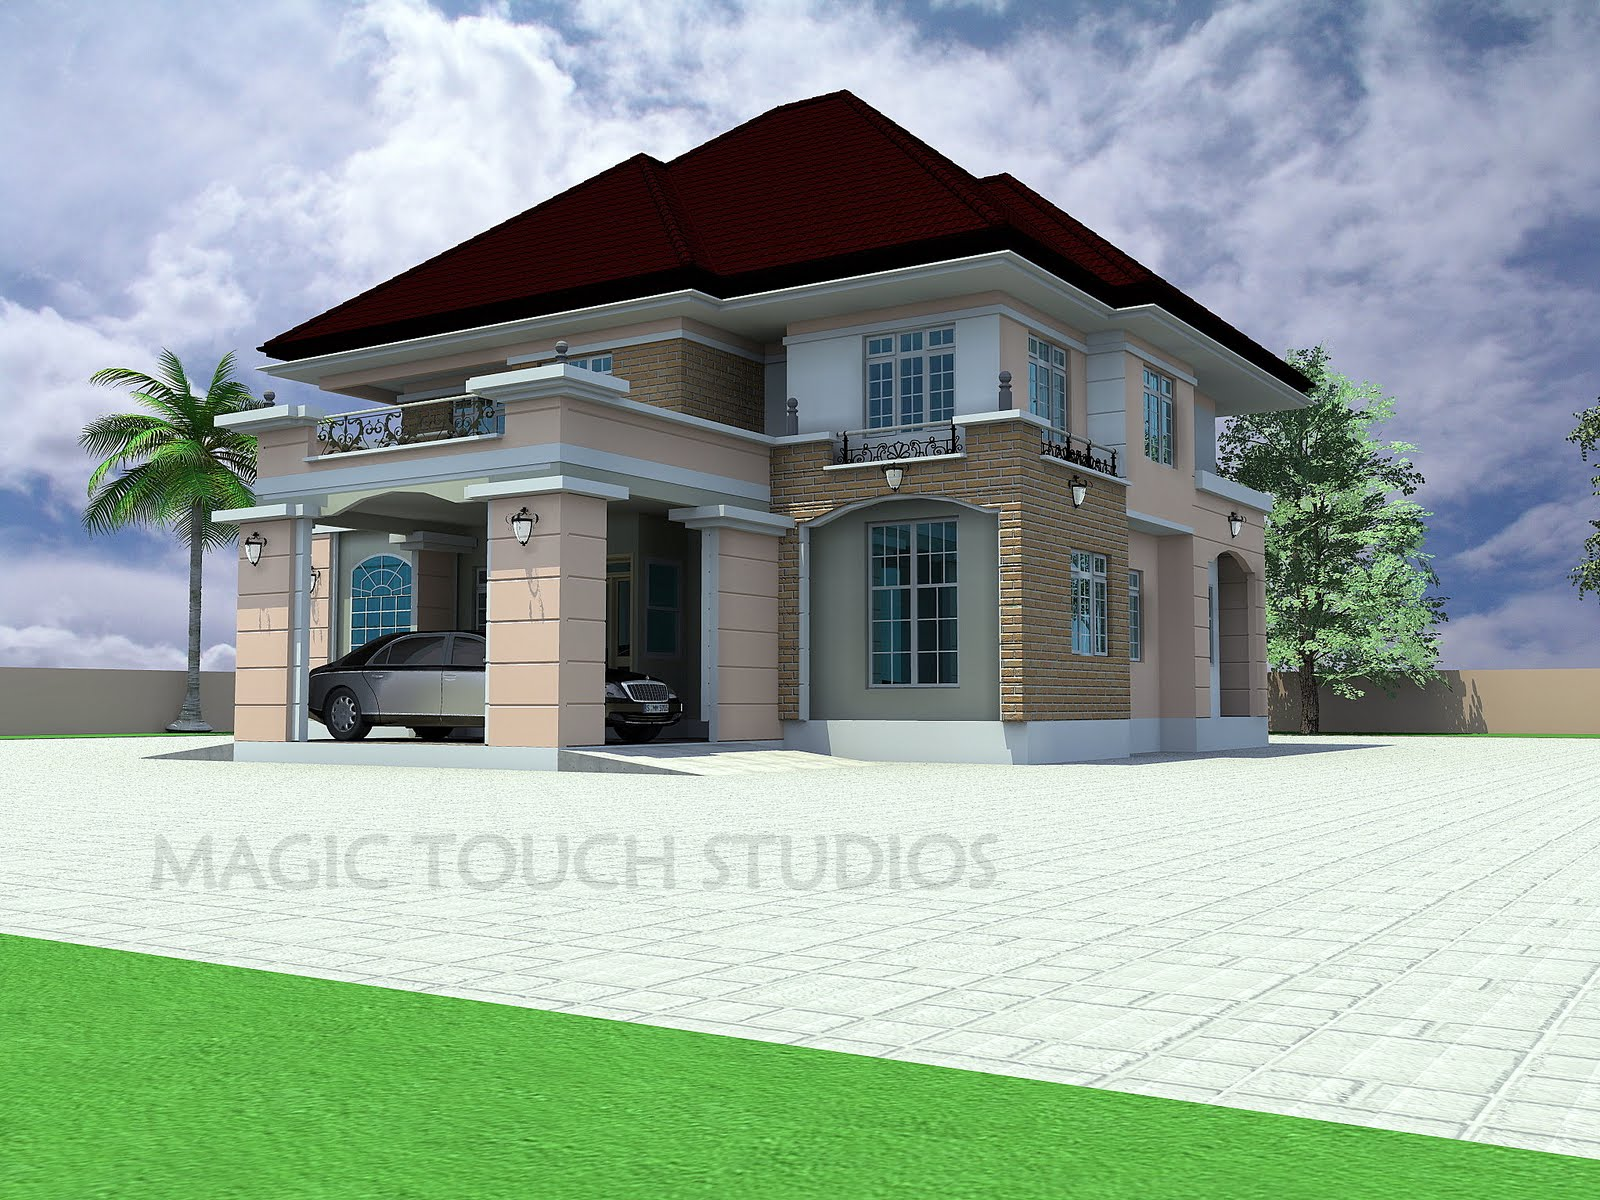 5 bedroom duplex house plans in nigeria house plan 2017 for Building plans for duplex homes